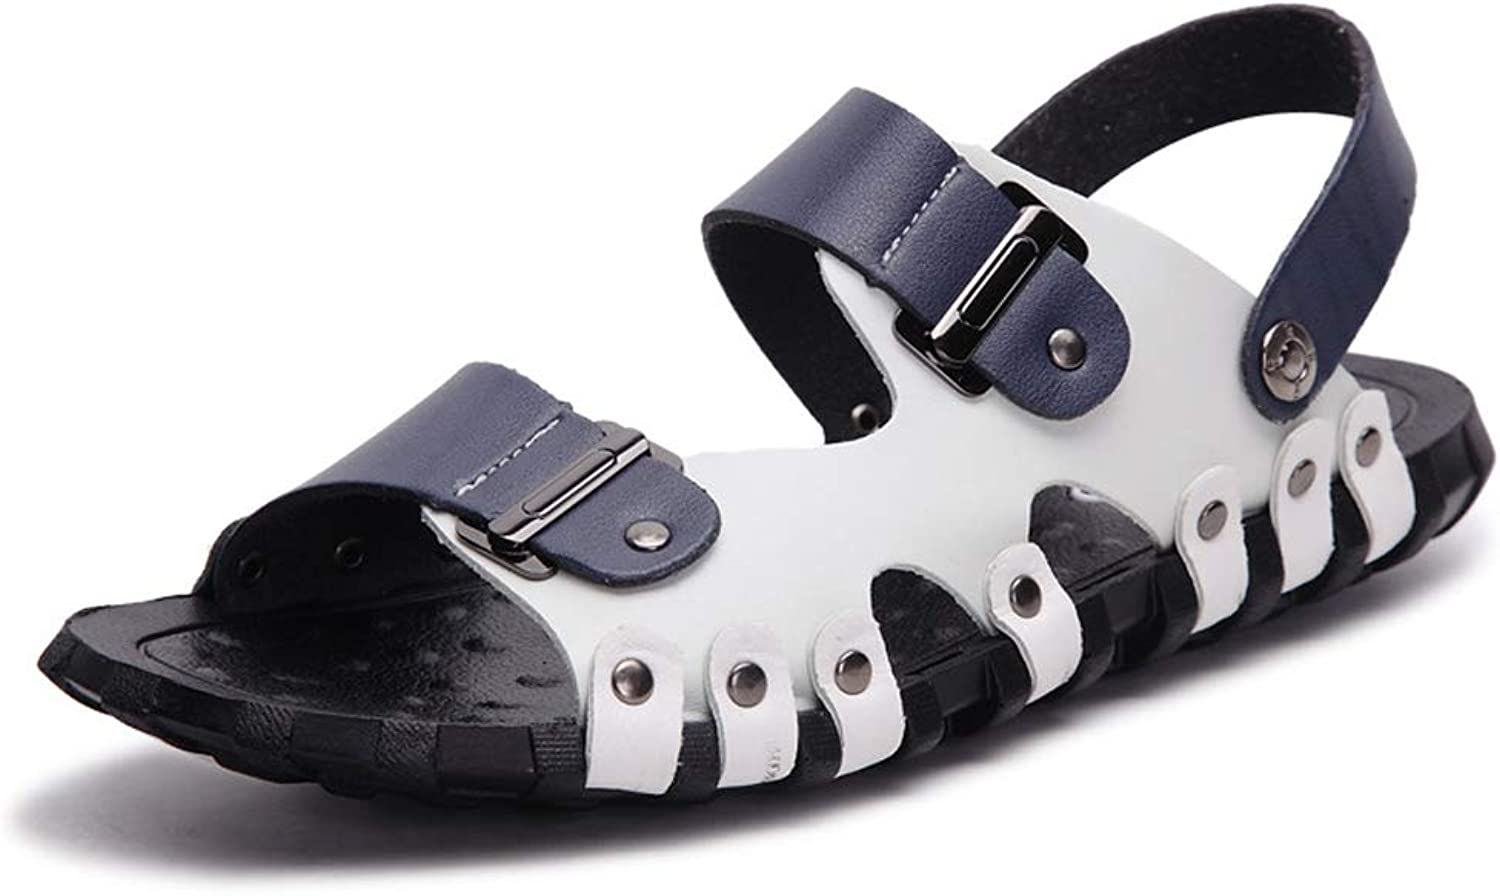 Summer Leather Sandals Men's Beach shoes Korean Casual Sandals and Slippers